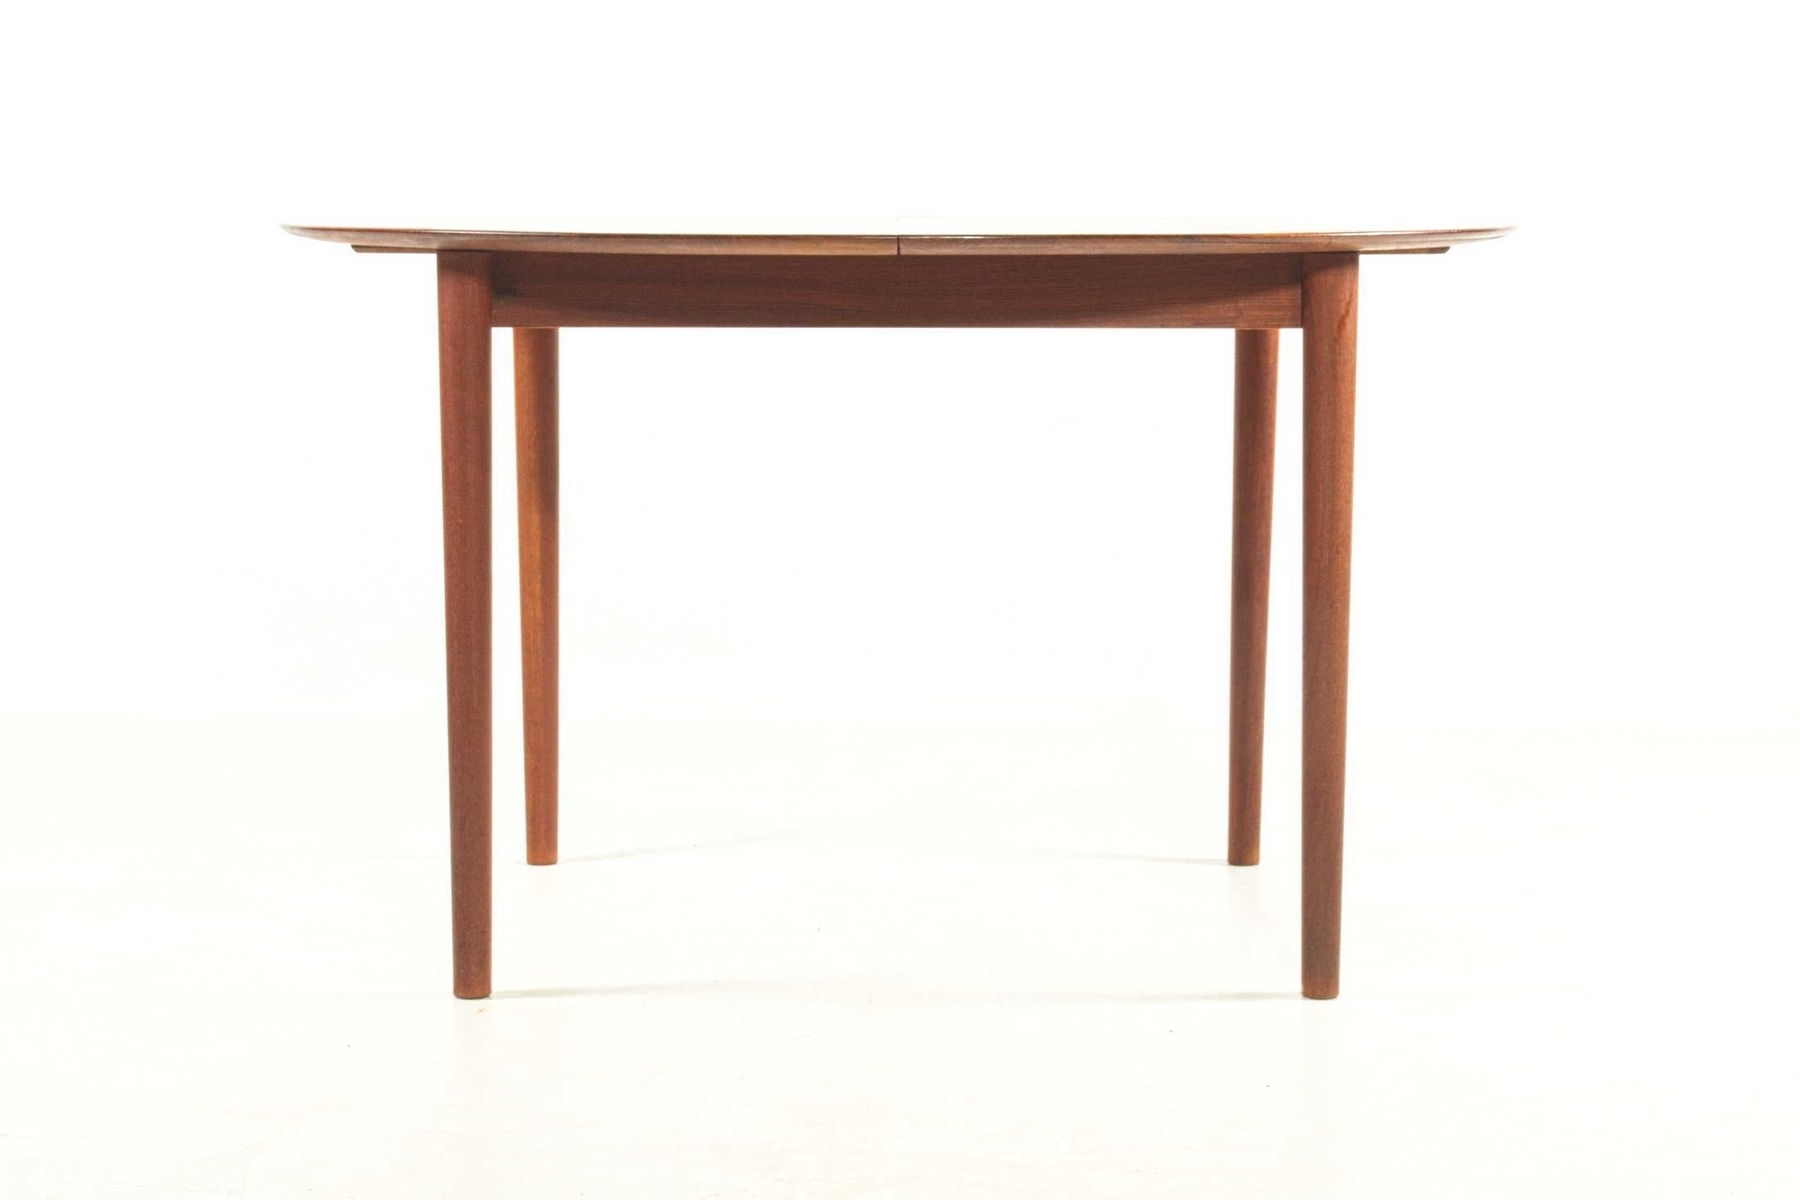 Popular Extendable Dining Tablepeter Hvidt For Søborg Møbelfabrik, 1950S Inside Lassen Extension Rectangle Dining Tables (View 23 of 25)